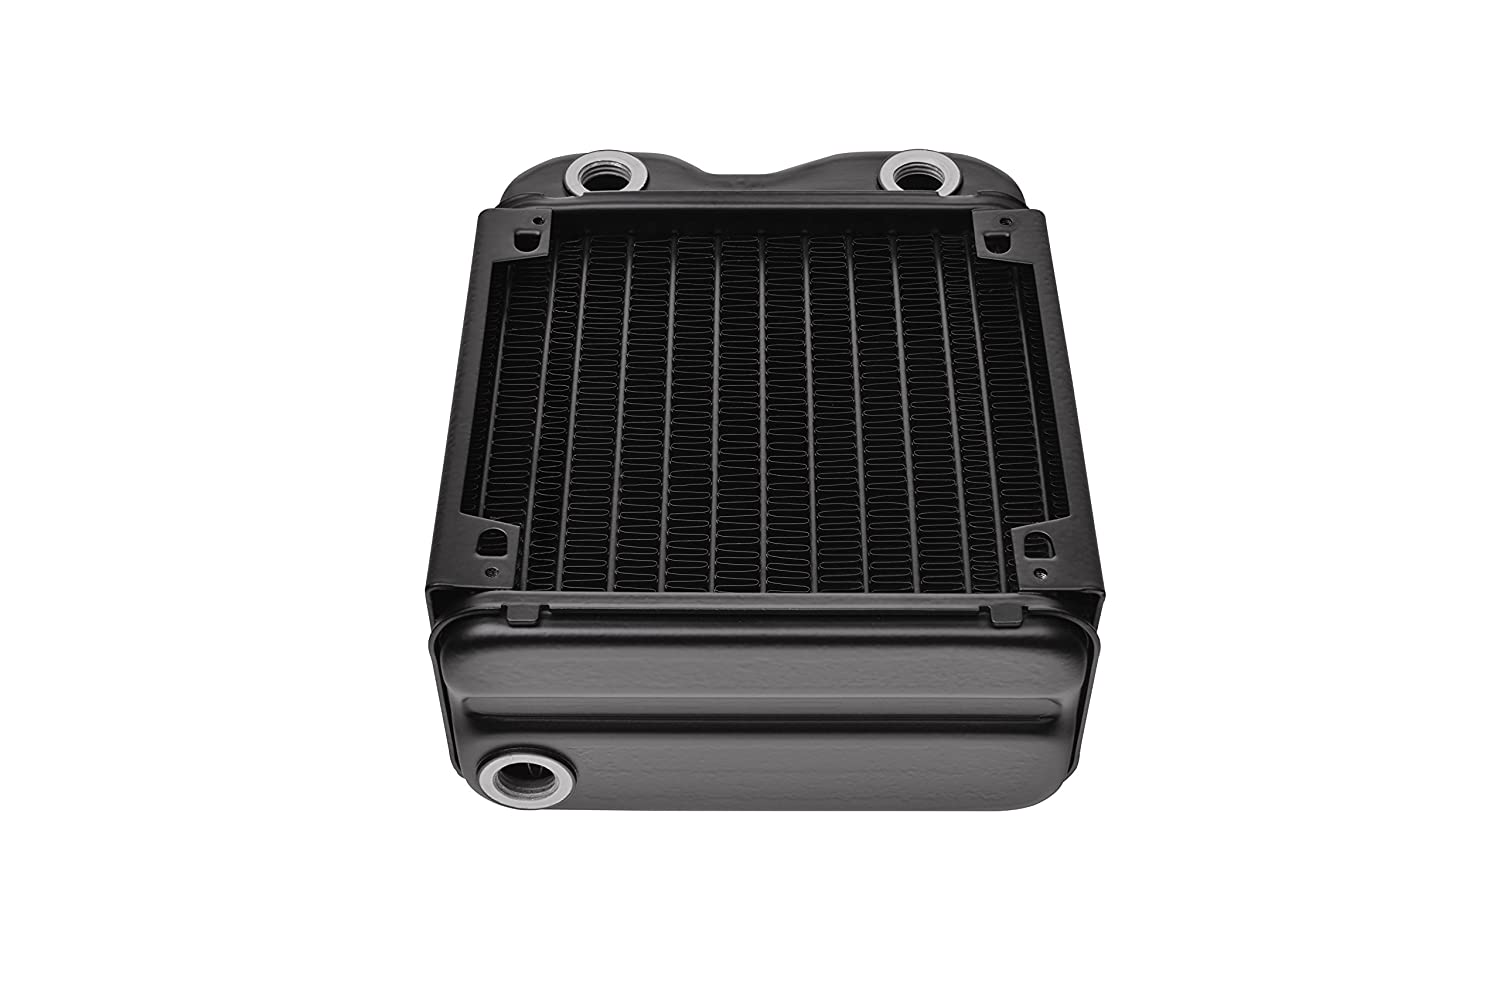 Thermaltake Pacific Radiator PLUS 16.8 Million Colors Digital LED Panel Designed for Pacific RL360 /& CL360 Radiators CL-W220-PL00SW-A